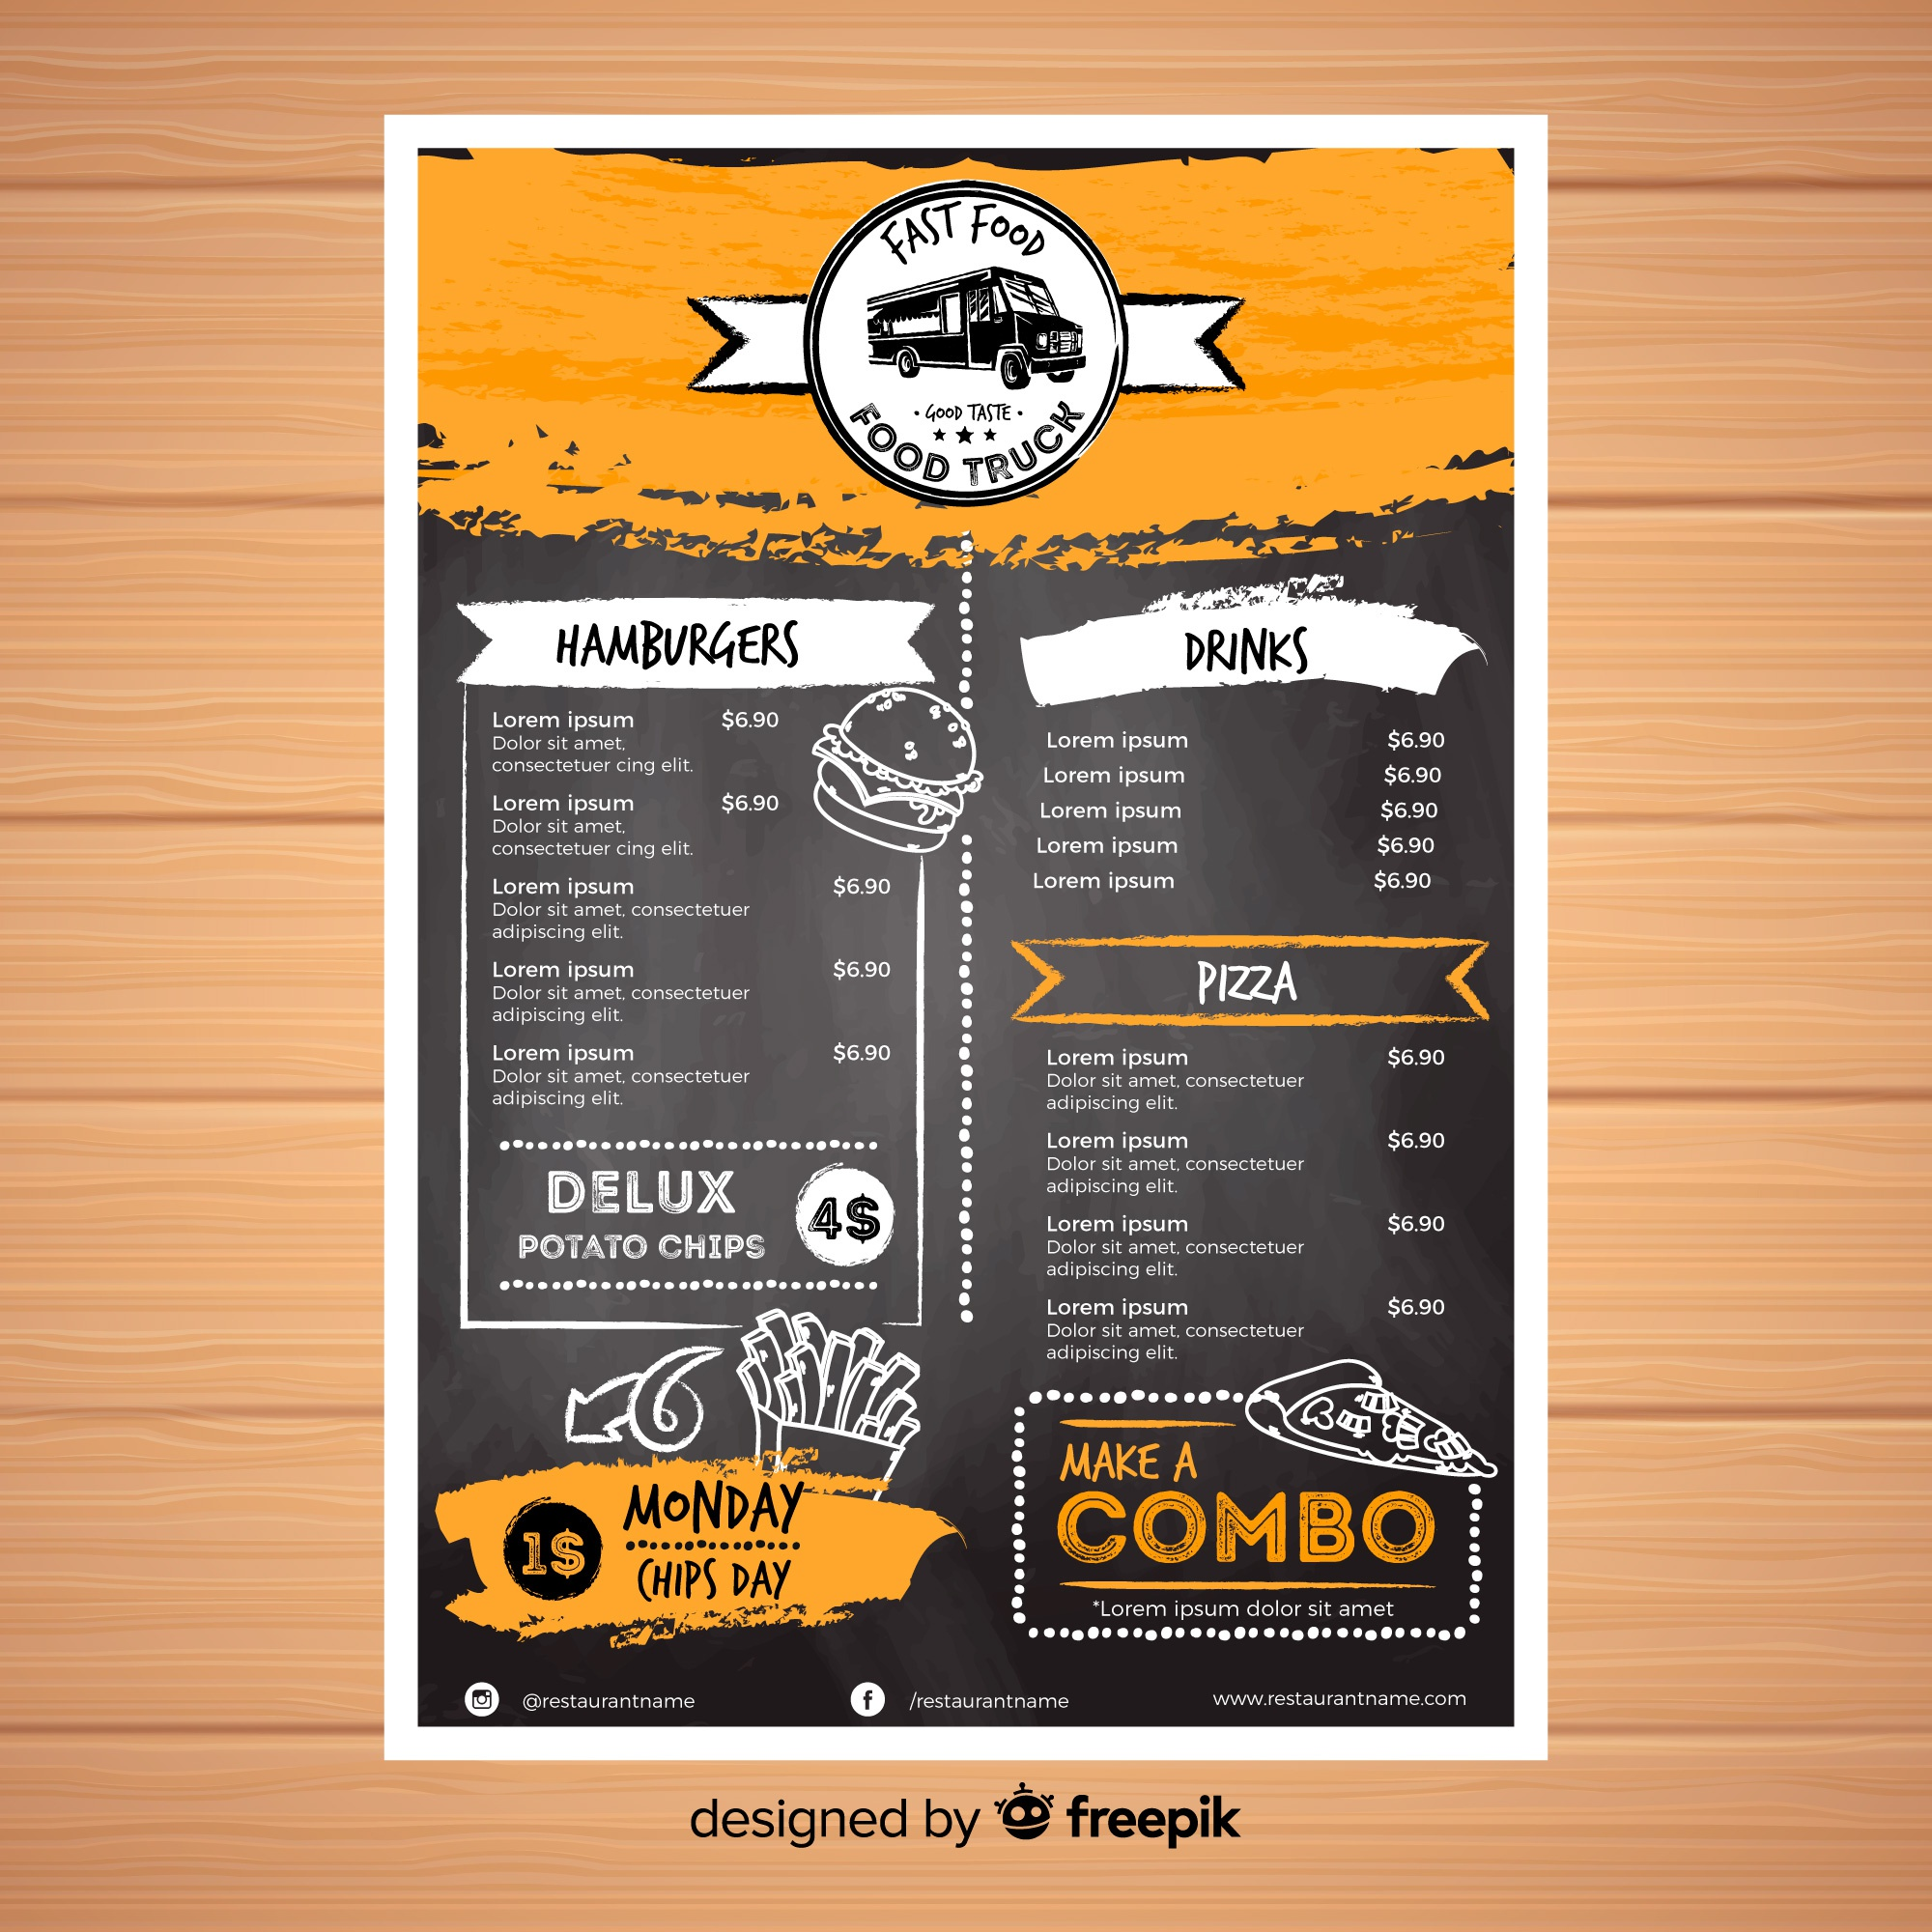 Restaurant menu template with chalkboard style